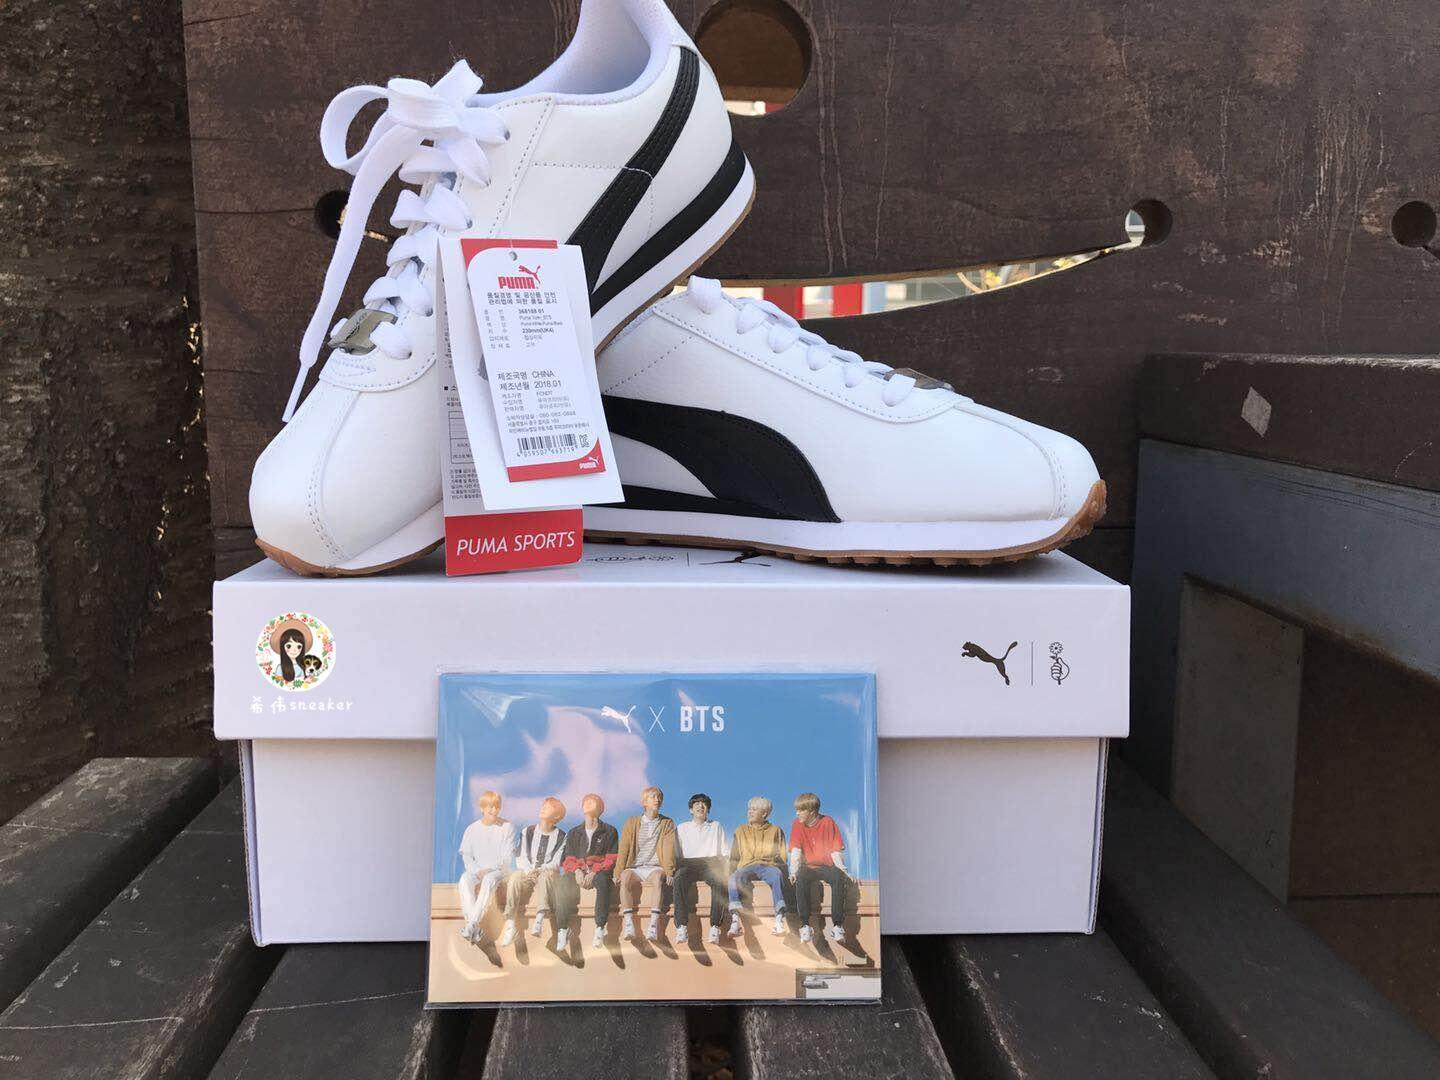 PUMA_×BTS puma_ small white shoes bulletproof juvenile group with the same paragraph 366202 01